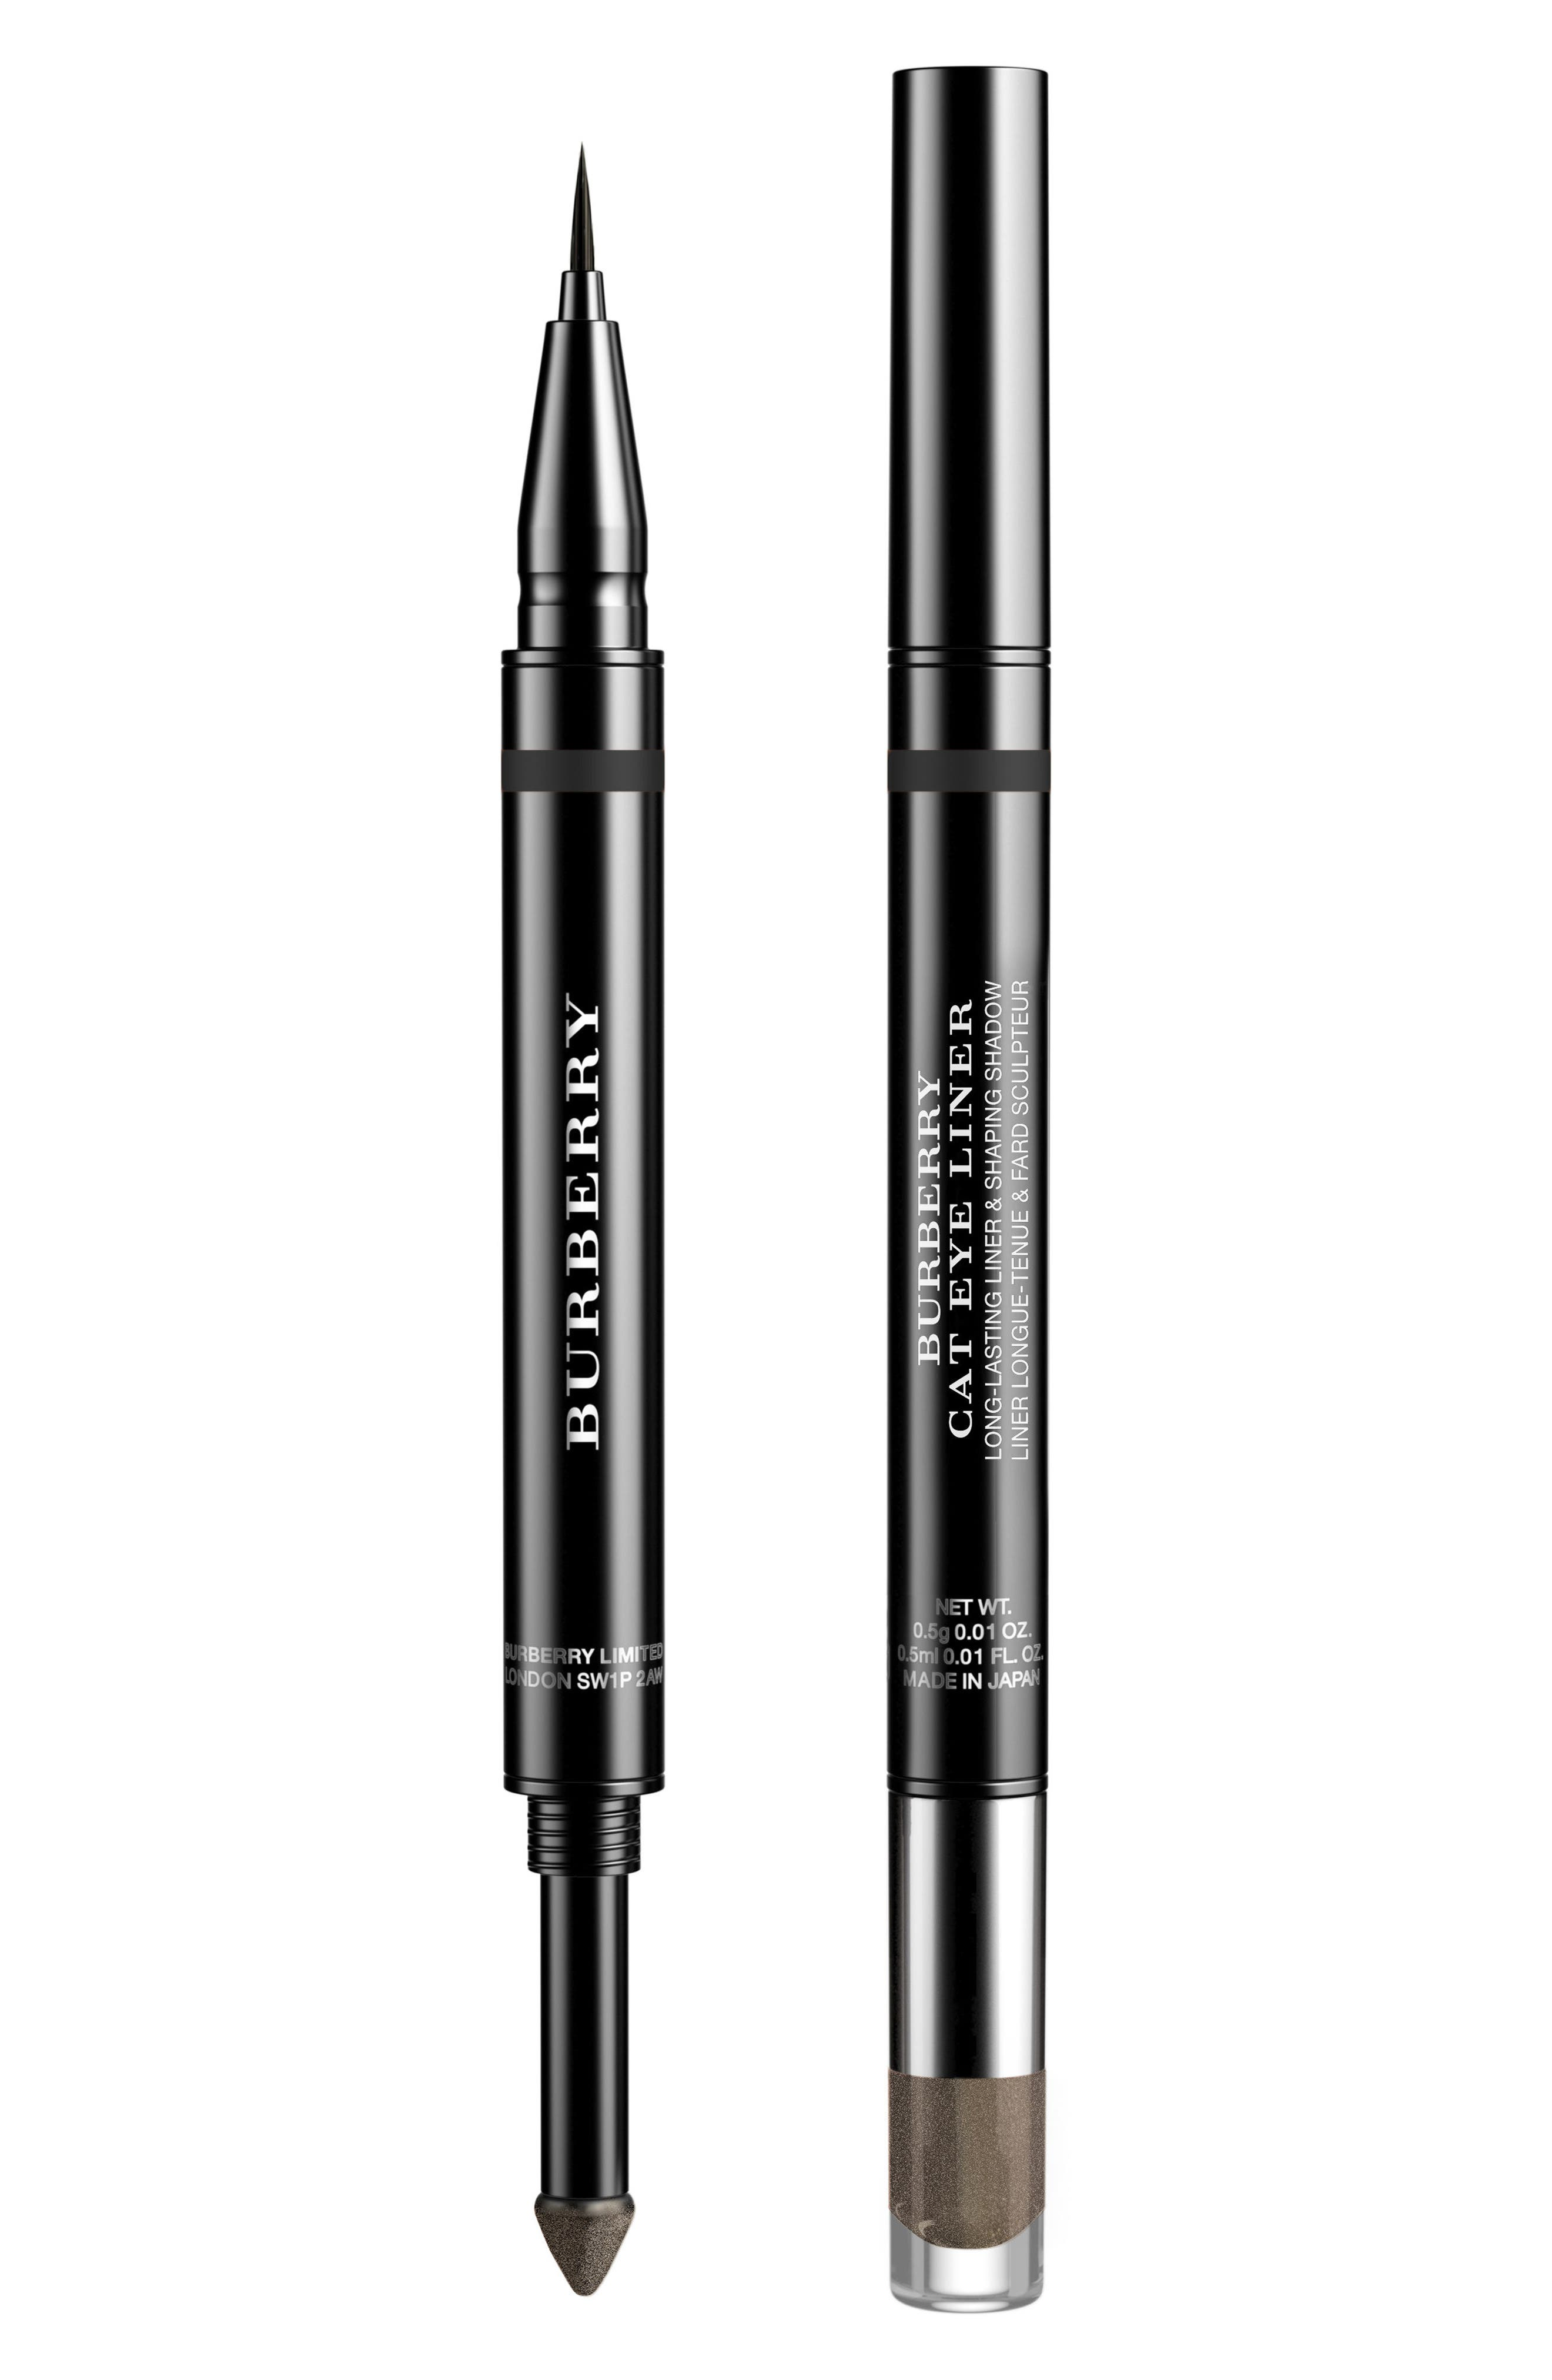 Burberry Beauty Cat Liner Long-Lasting Liner & Shaping Shadow